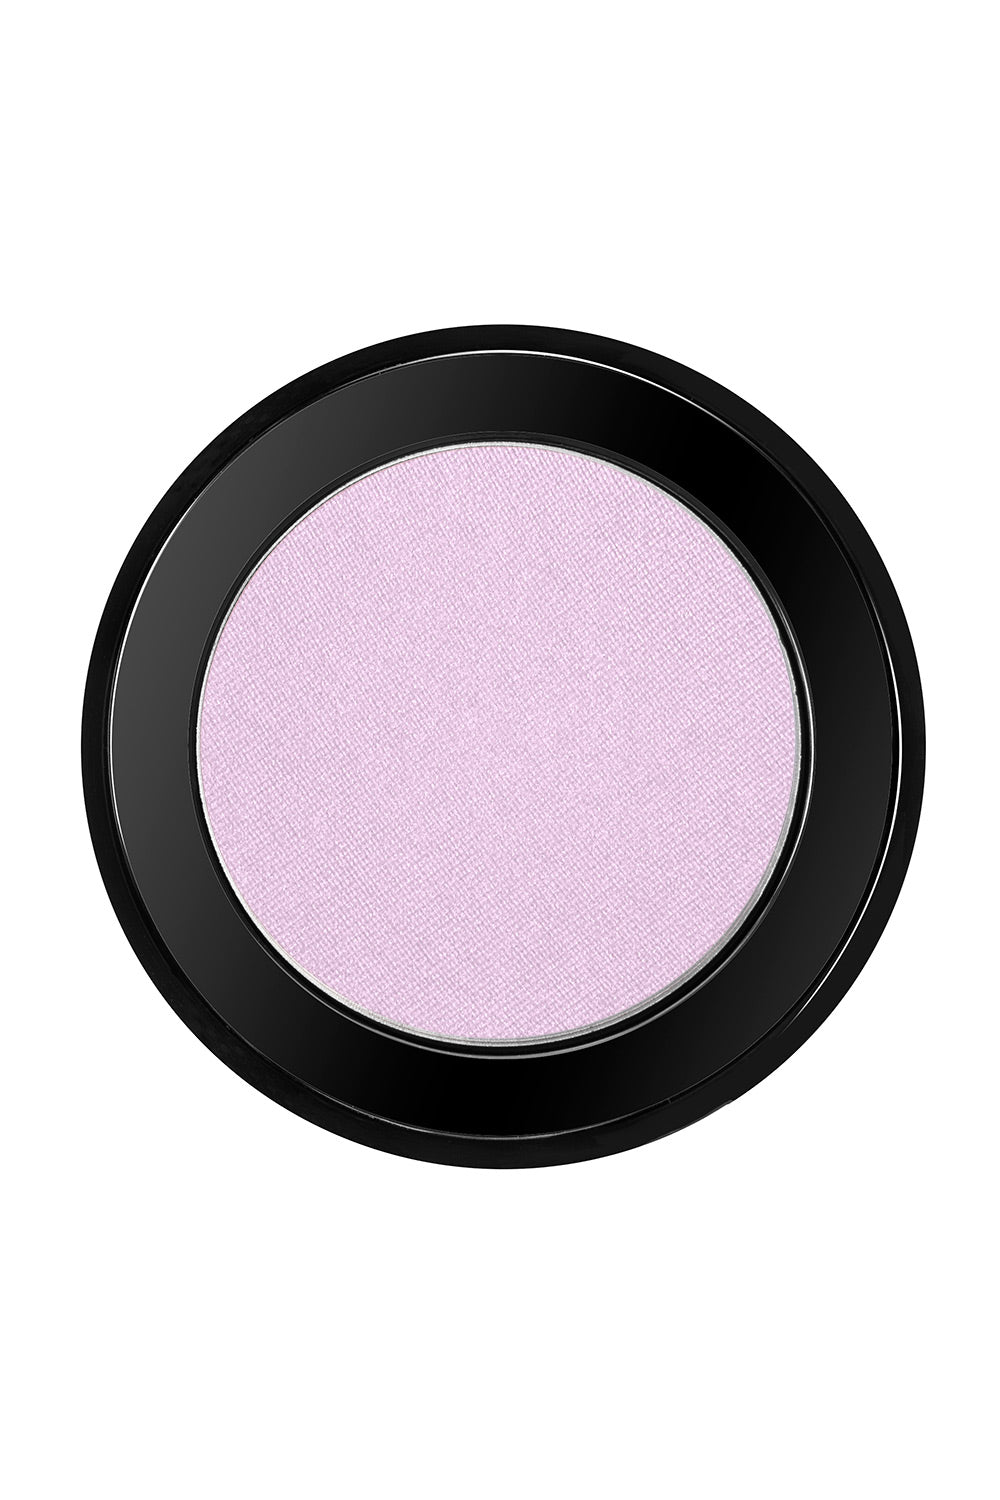 Type 2 Eyeshadow - Sensation